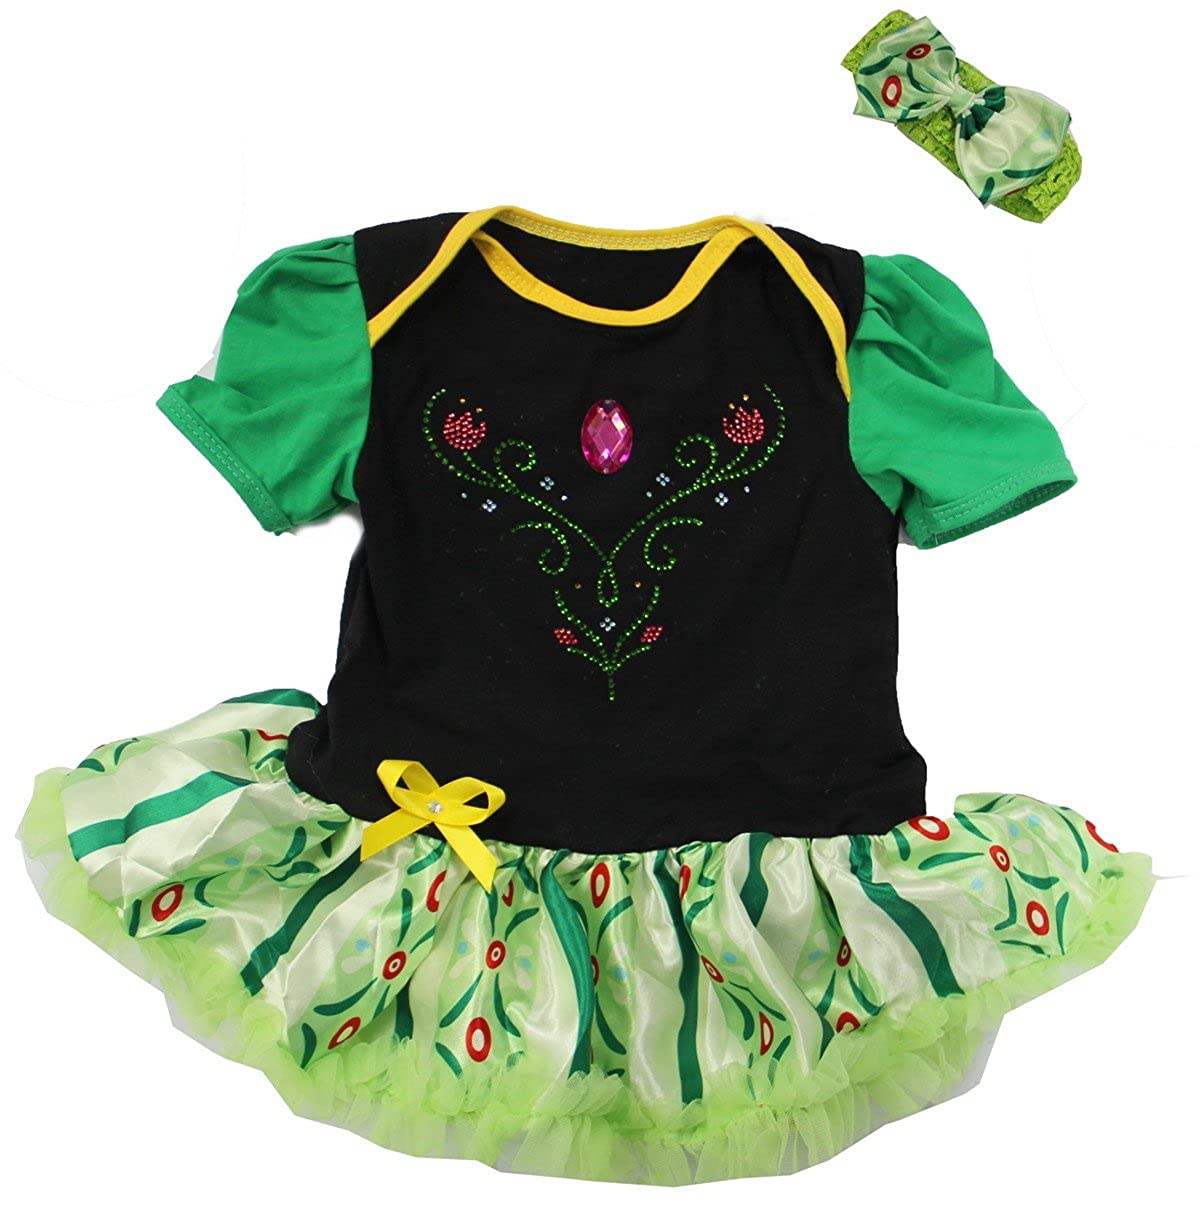 Amedahk Baby Princess Coronation Costume